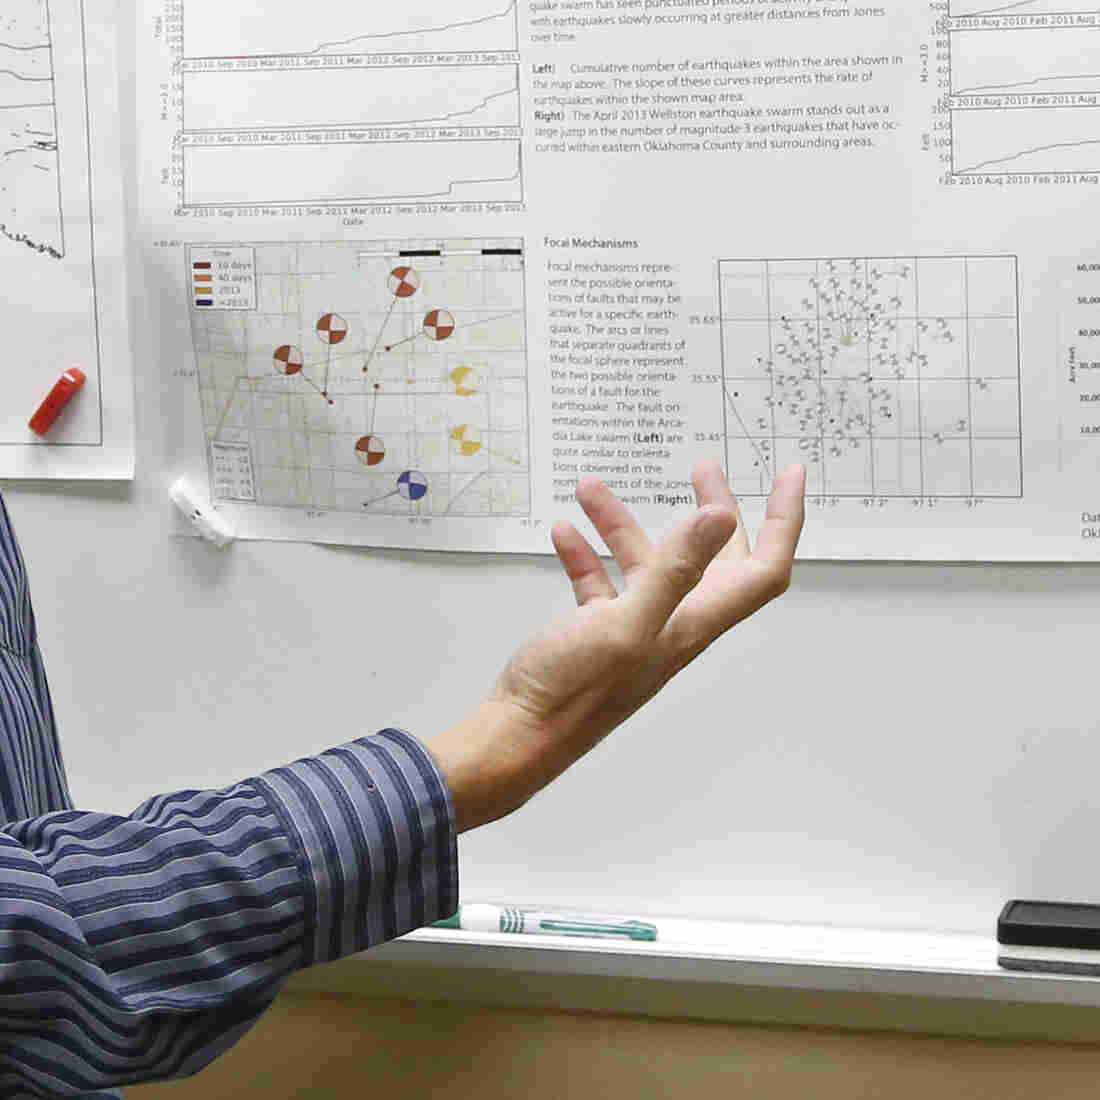 Austin Holland, research seismologist at the Oklahoma Geological Survey, gestures to a chart of Oklahoma earthquakes in June 2014 as he talks about recent earthquake activity at his offices at the University of Oklahoma in Norman, Okla. The state had three times as many earthquakes as California last year.